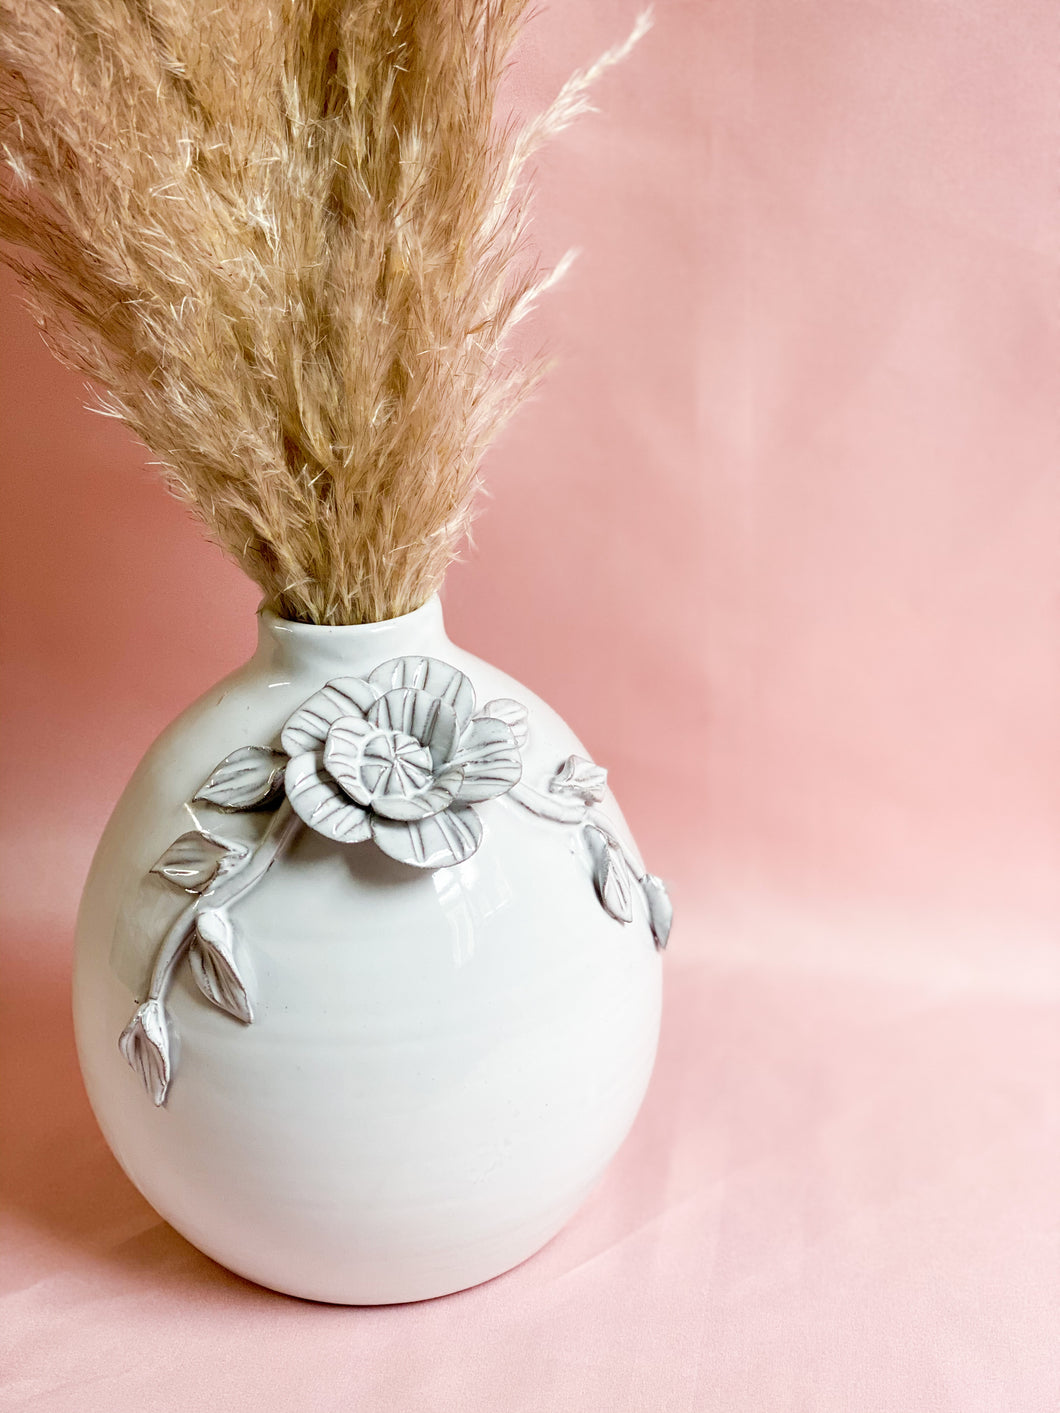 Perfect piece of ceramic With this adorable flower detail for any side table or shelf styling